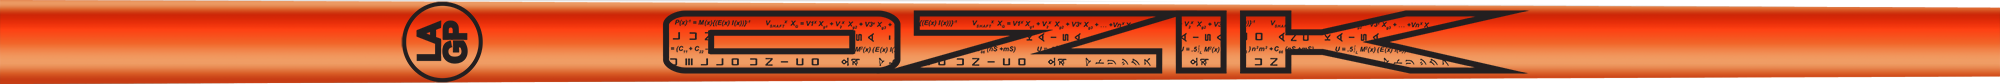 Ozik White Tie: Neon Orange Black Gloss - Wood 50 R